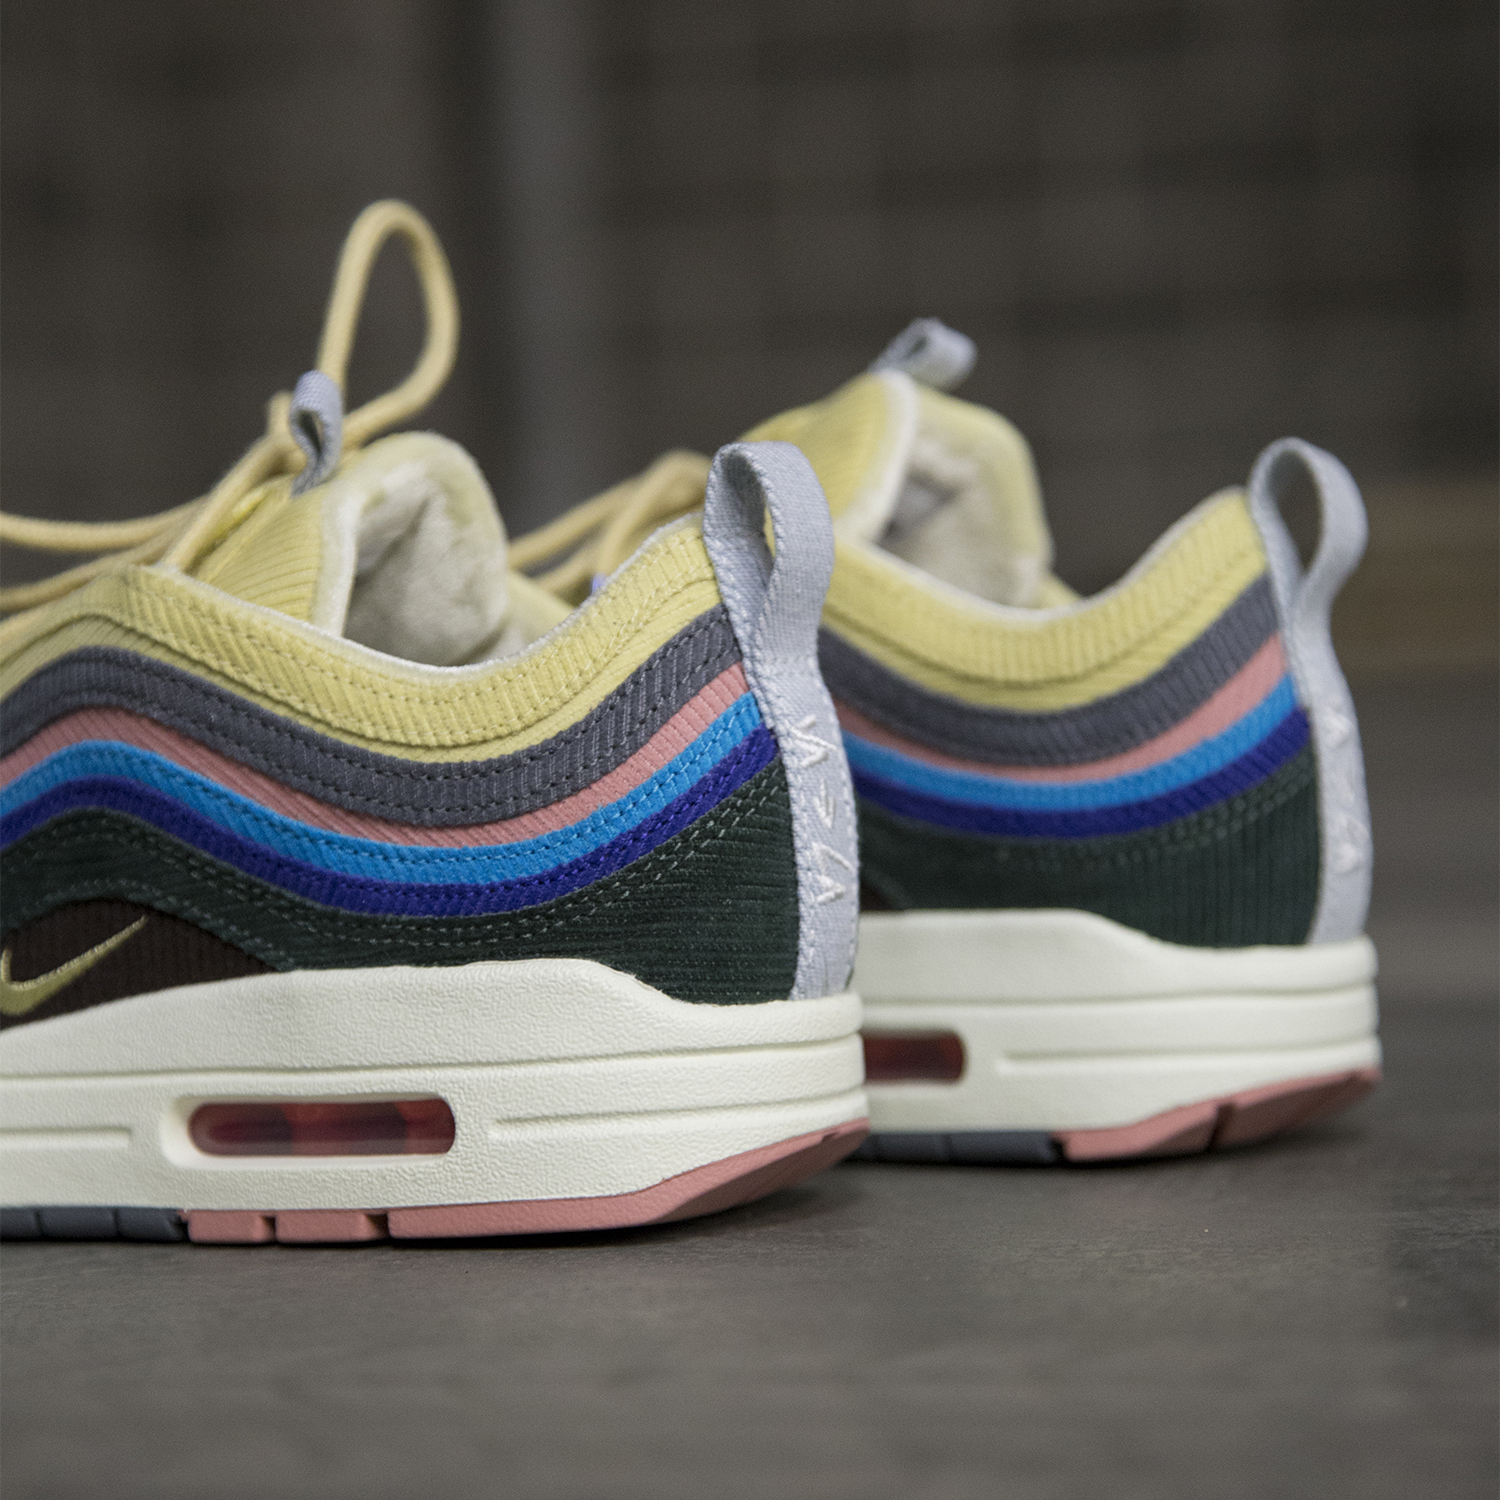 nike air max 97 size 6 in Clothes, Shoes & Accessories eBay